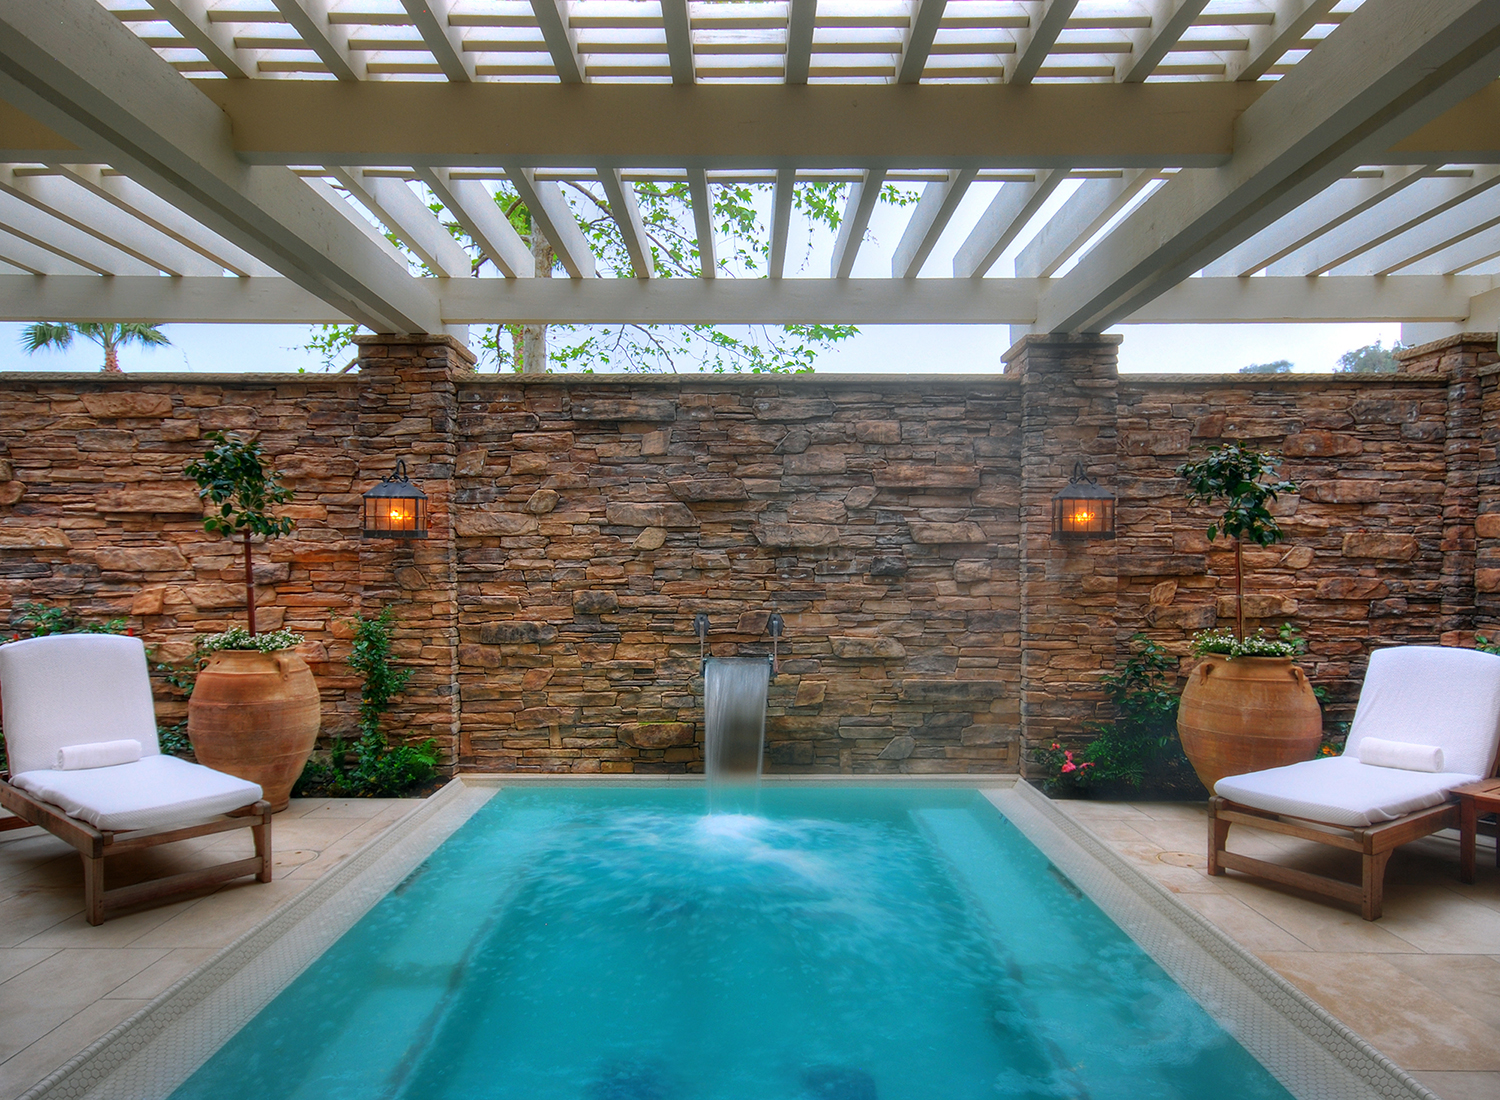 The spa pool in the wet room lounge.